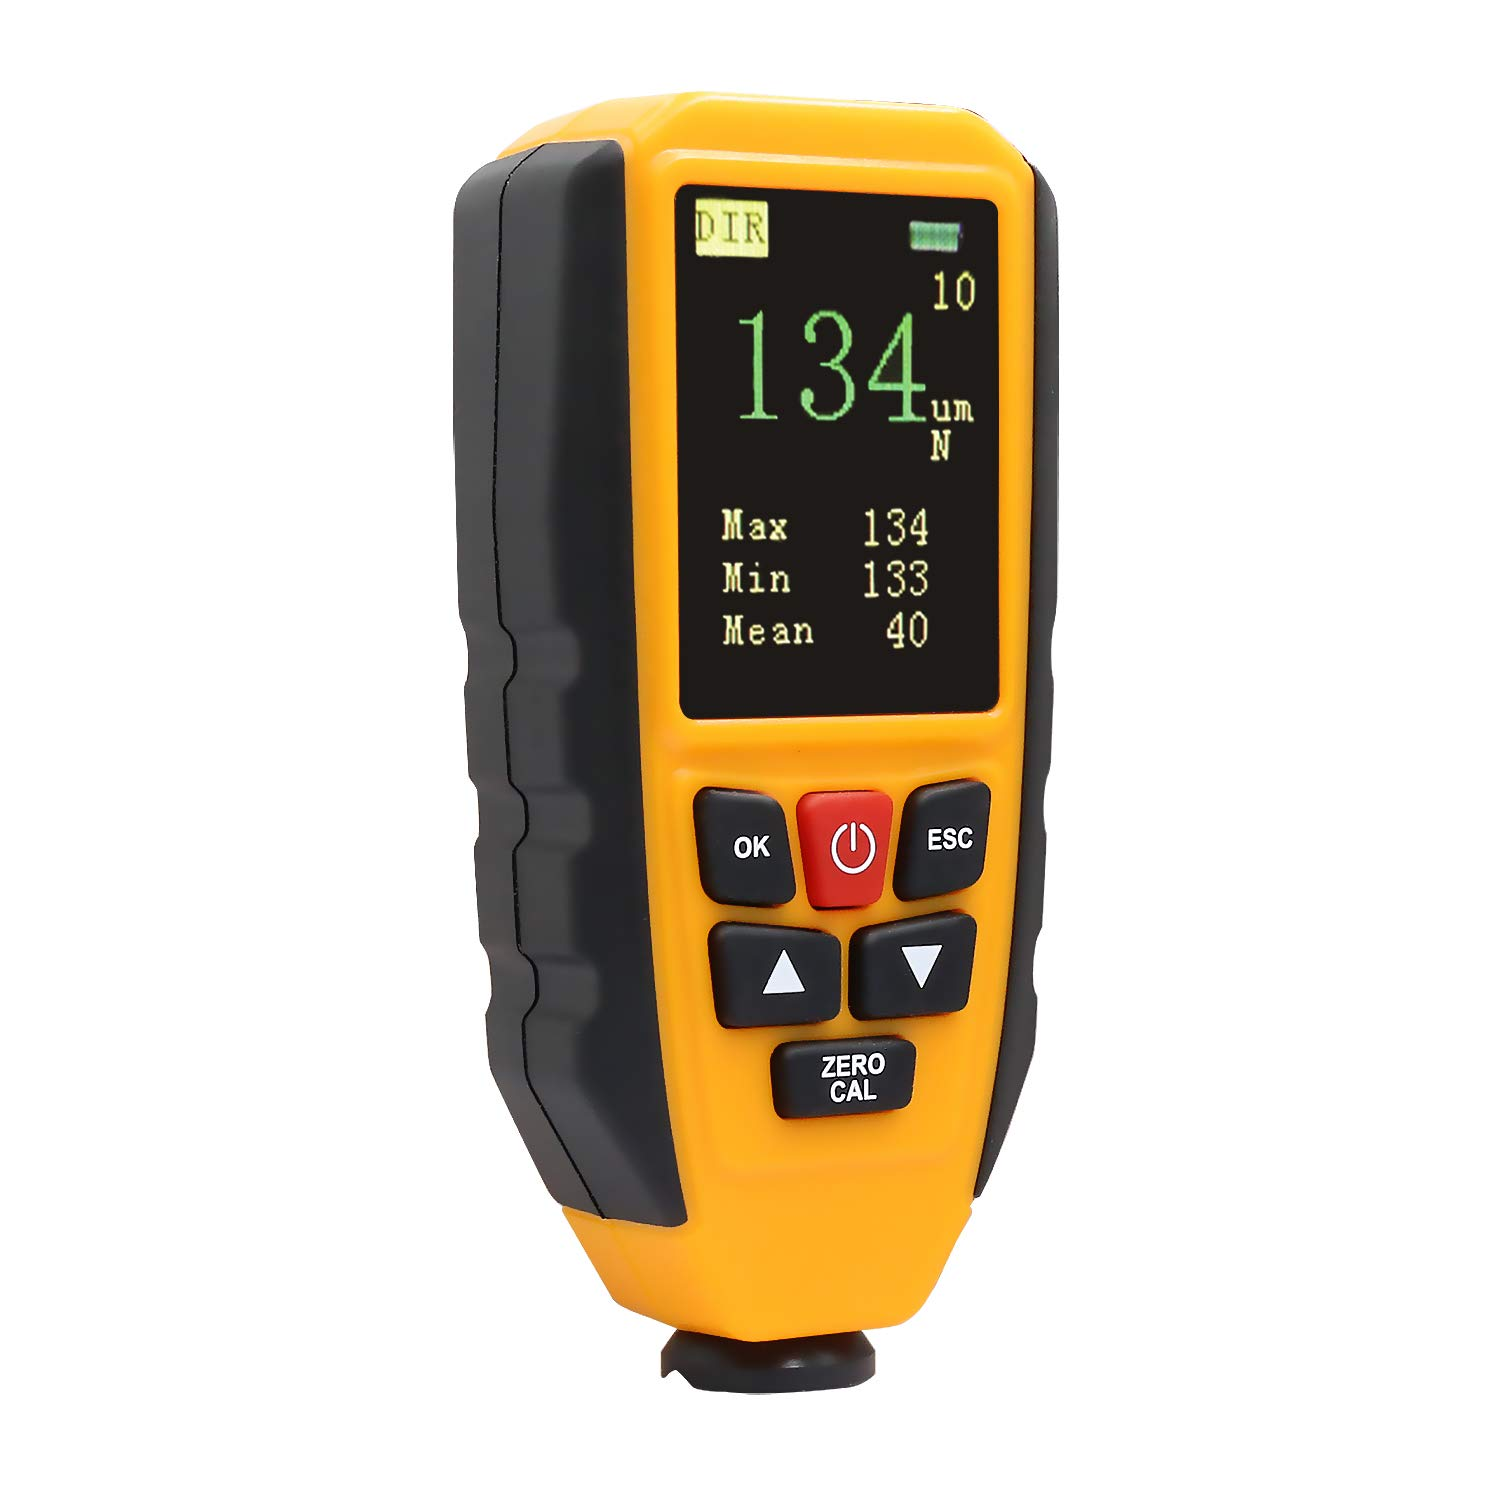 Coating Thickness Gauge Tester with Backlight LCD Color Display, Automatic Recognition of Ferrous and Non-Ferrous Substrates(0~1300um), Hti-Xintai